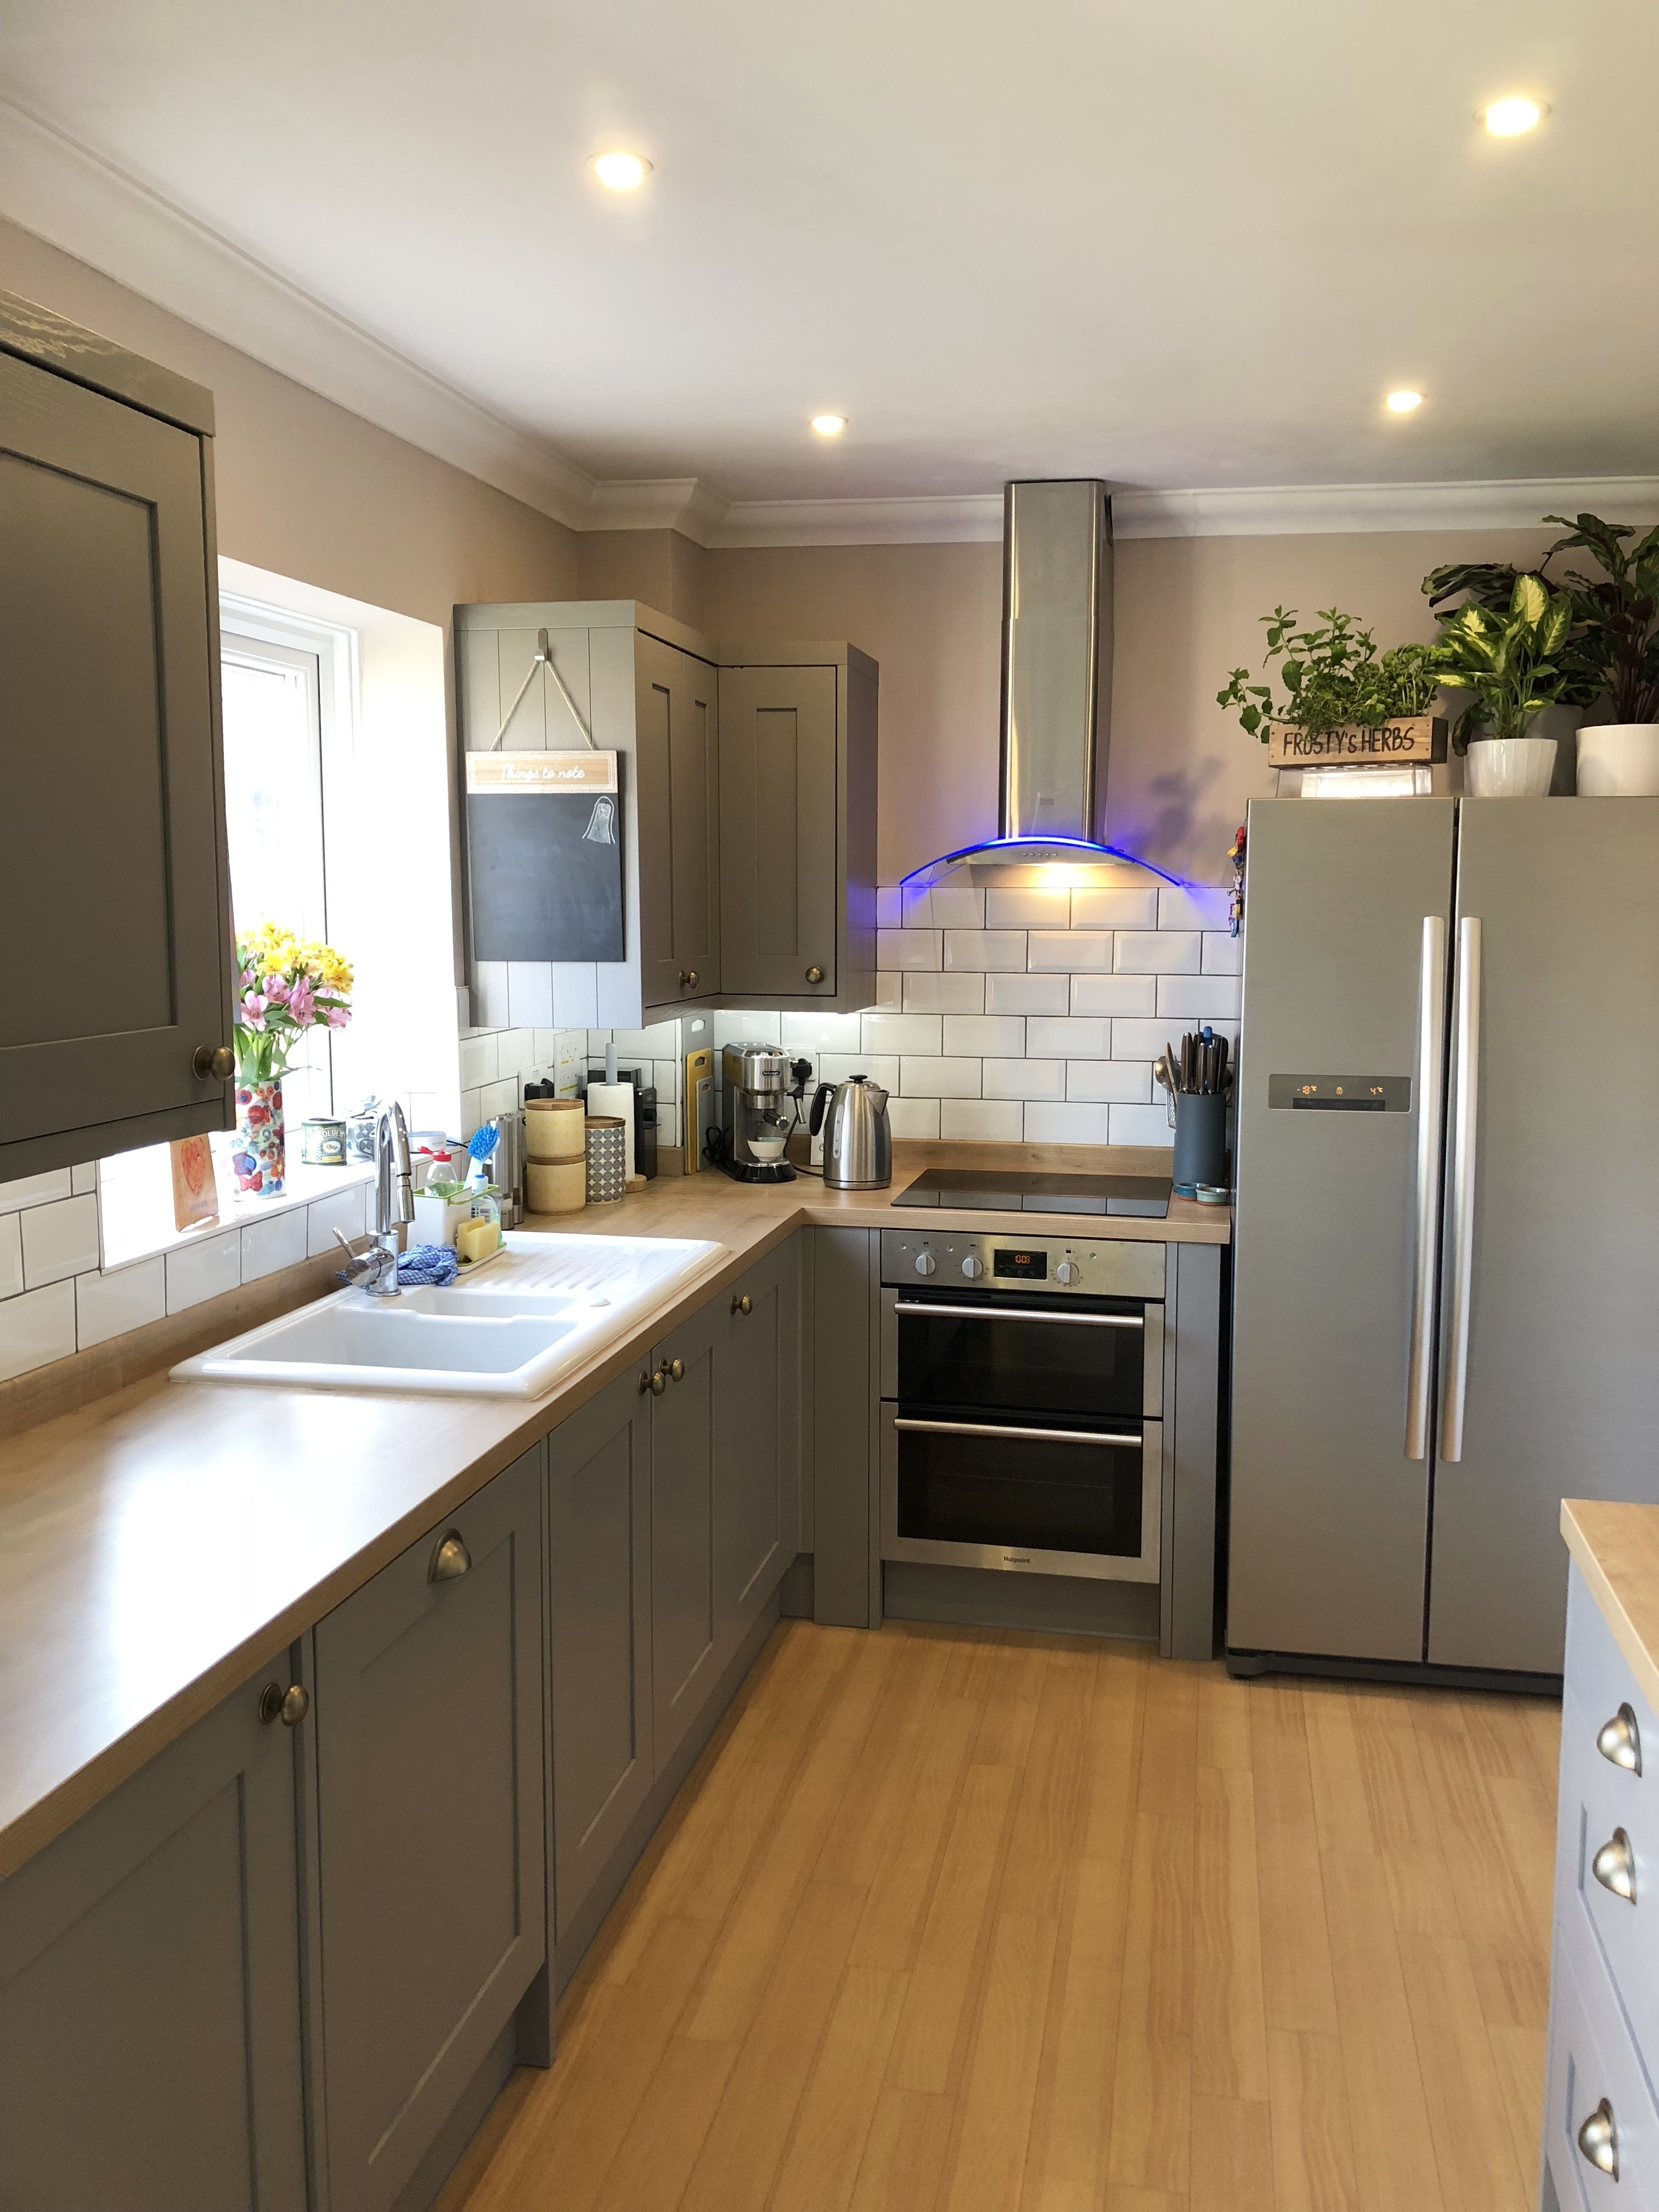 B&q Kitchen B Q Carisbrook Taupe Kitchen Wicks Windsor Handles And Subway